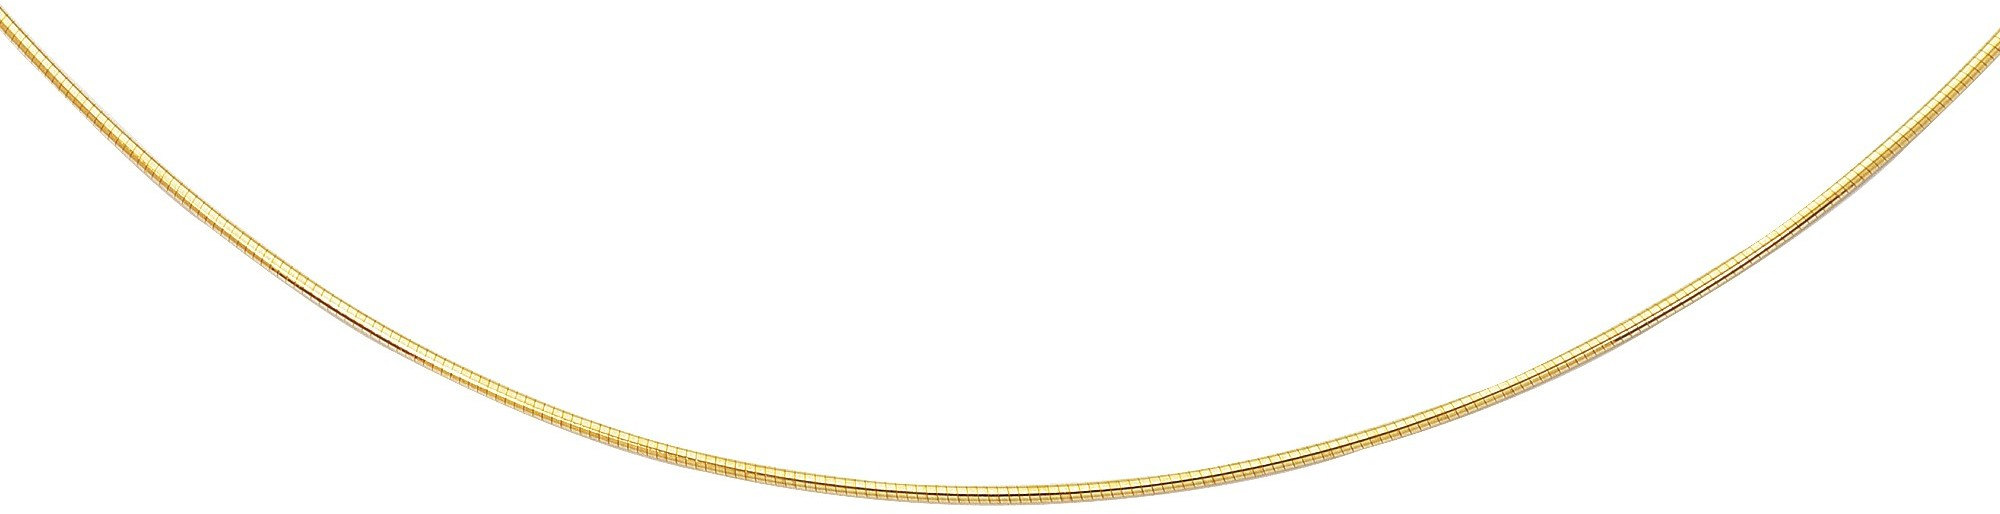 "20"" 14K Yellow Gold 1.5mm (0.06"") Polish Diamond Cut Round Omega Necklace w/ Screw Off Lock & Pear Shape Clasp"